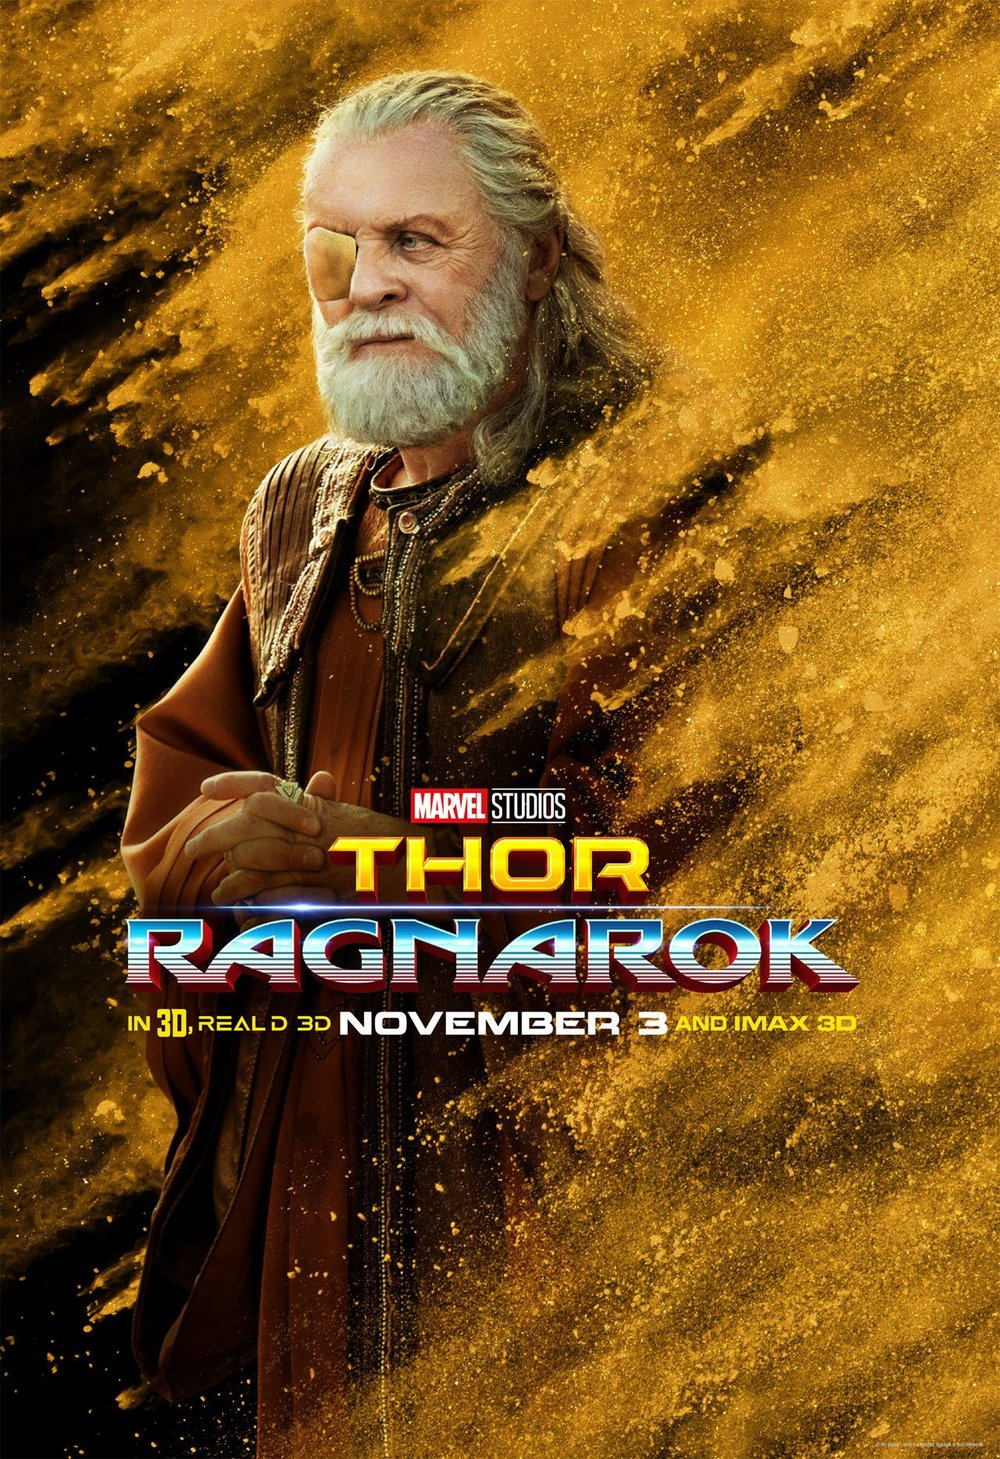 8-wild-thor-ragnarok-character-posters-give-the-heroes-and-villains-an-explosion-of-color6.jpeg